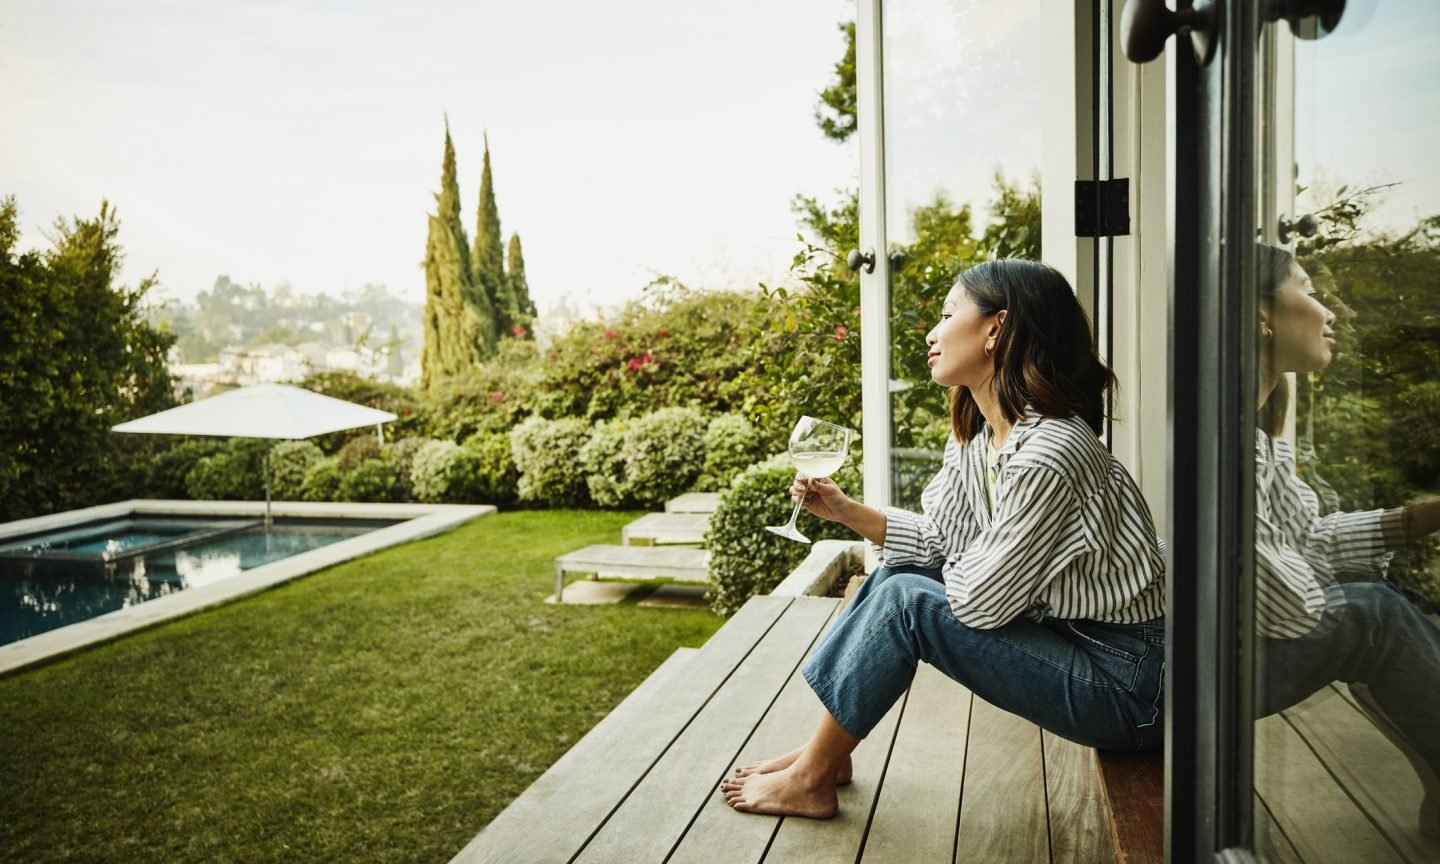 5 Home Remodeling Trends to Watch for in 2021 - NerdWallet